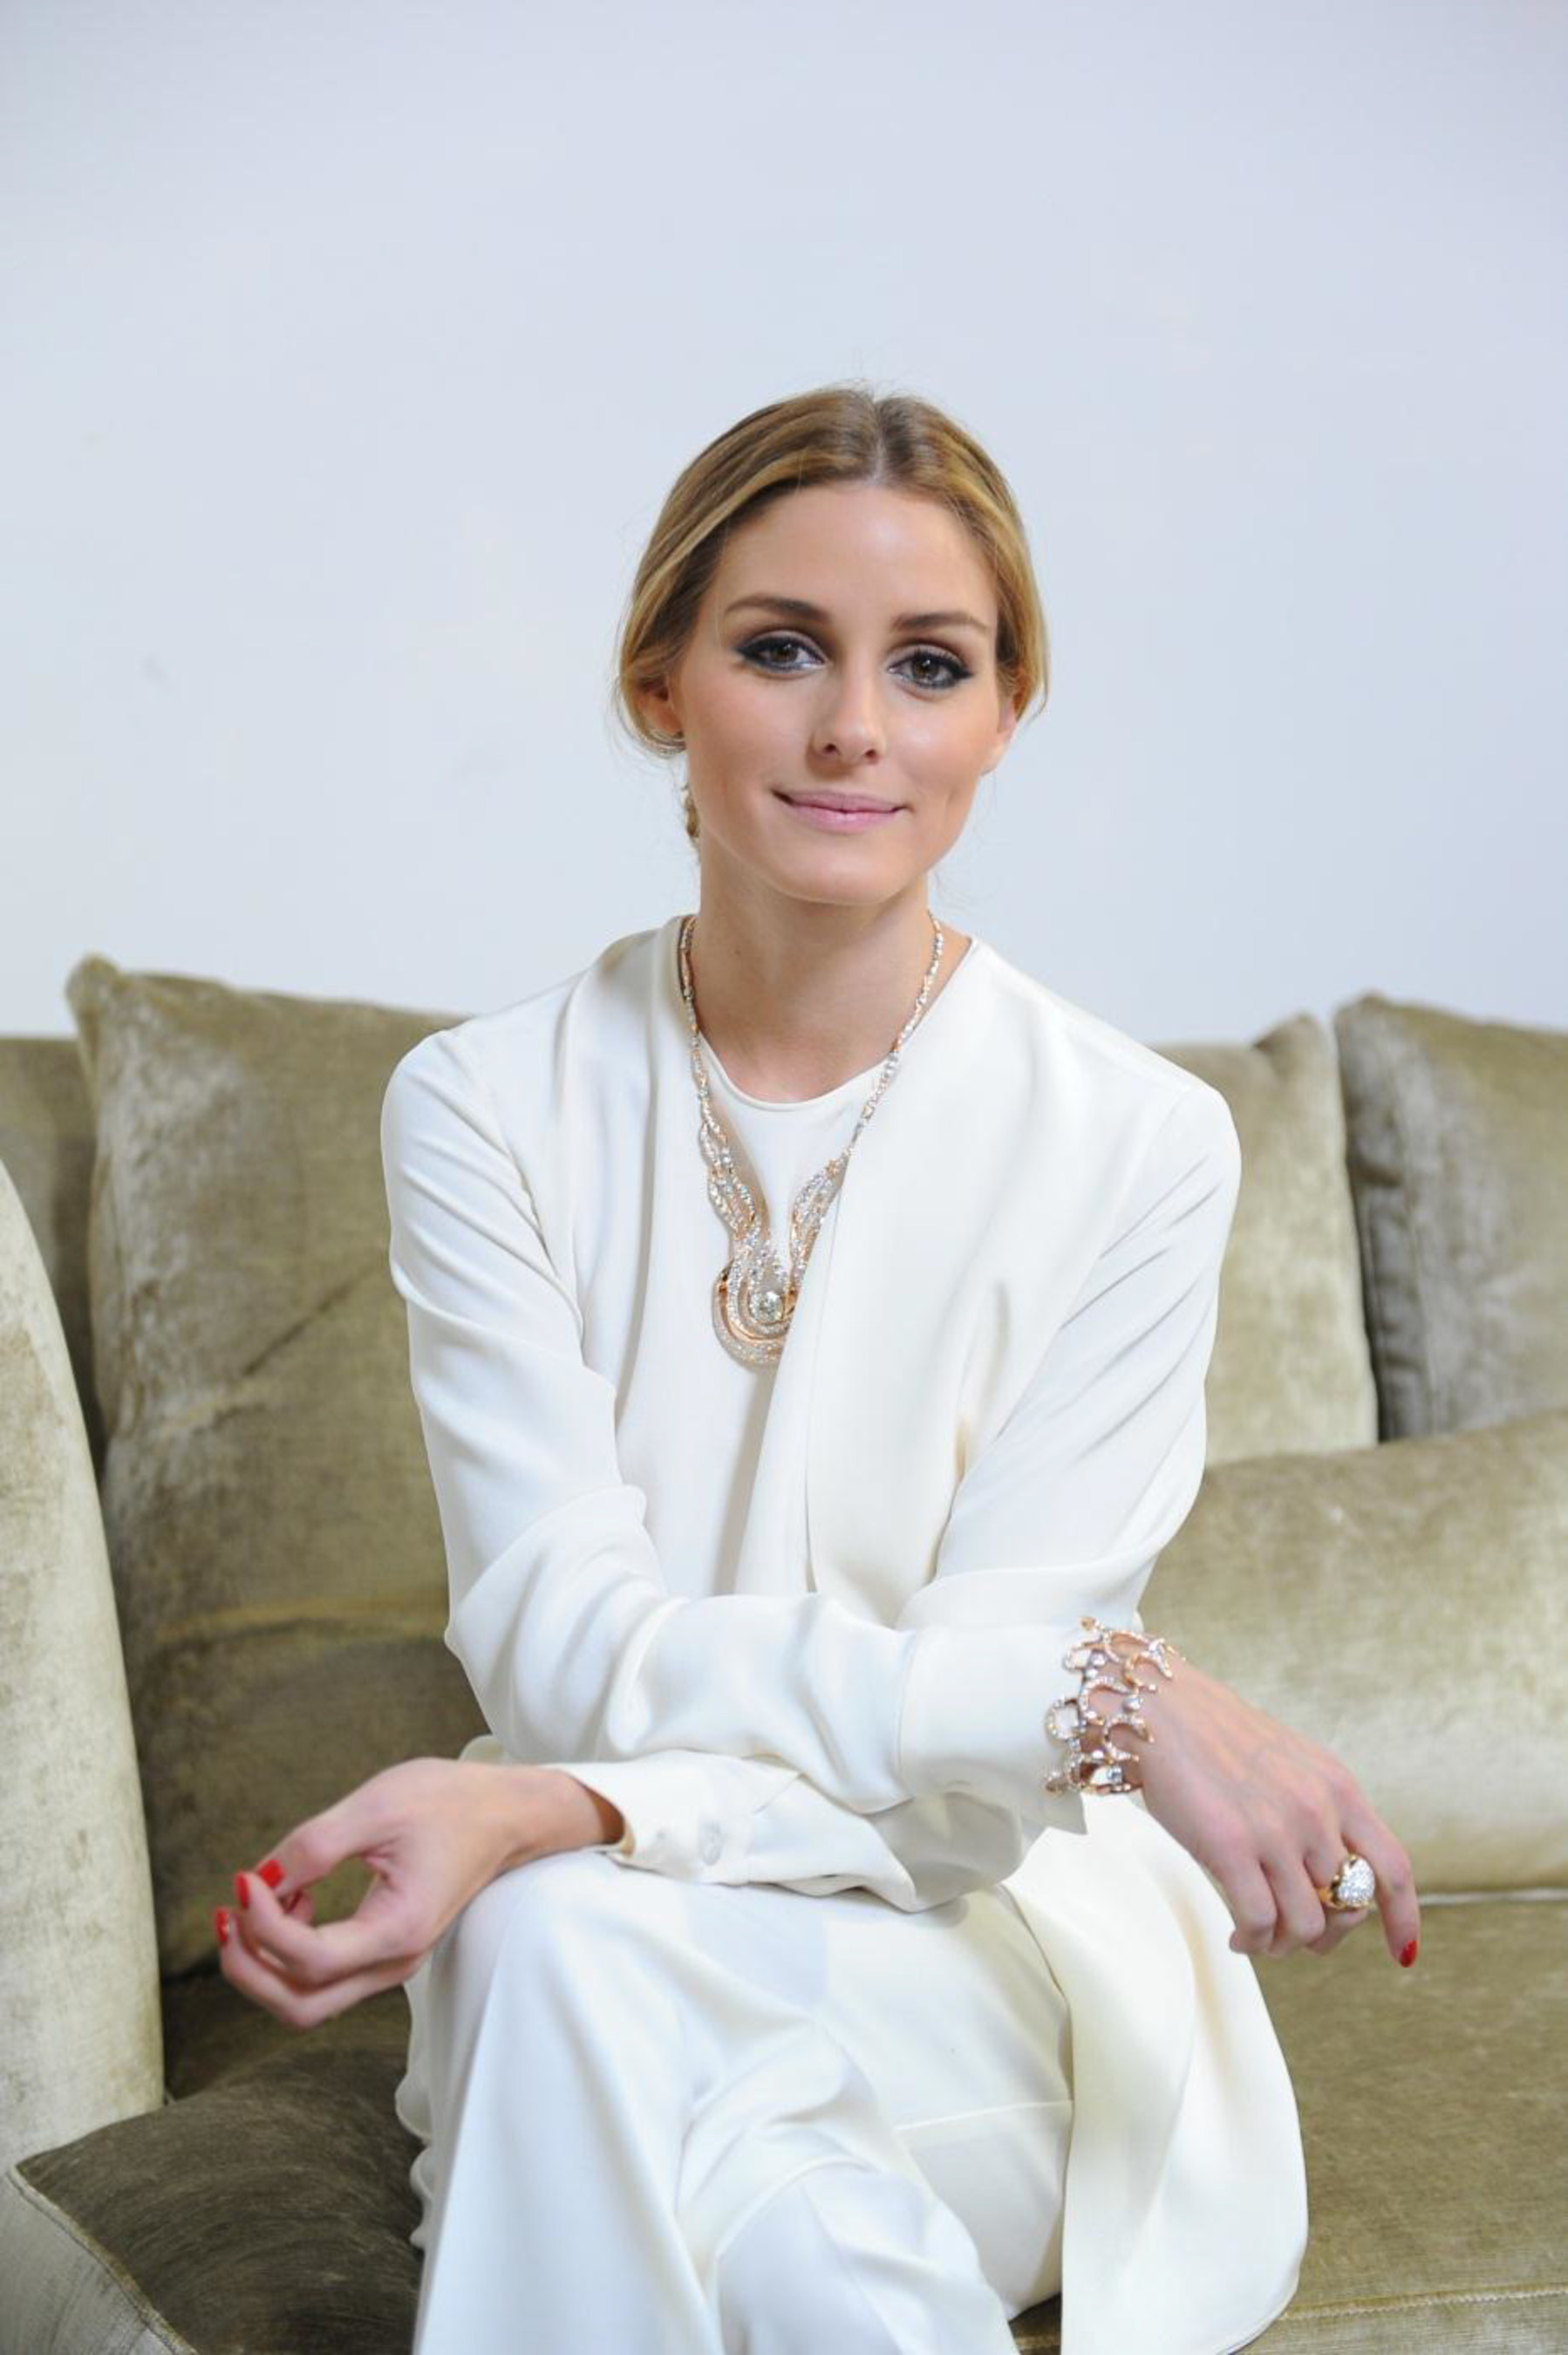 "Fashion icon Olivia Palermo joins Hearts On Fire and Chow Tai Fook as a special guest at the opening of Hearts On Fire's first store in Shanghai, China. In this photo, Palermo debuts the new Hearts On Fire ""Fire"" Collection that will exclusively launch in China."